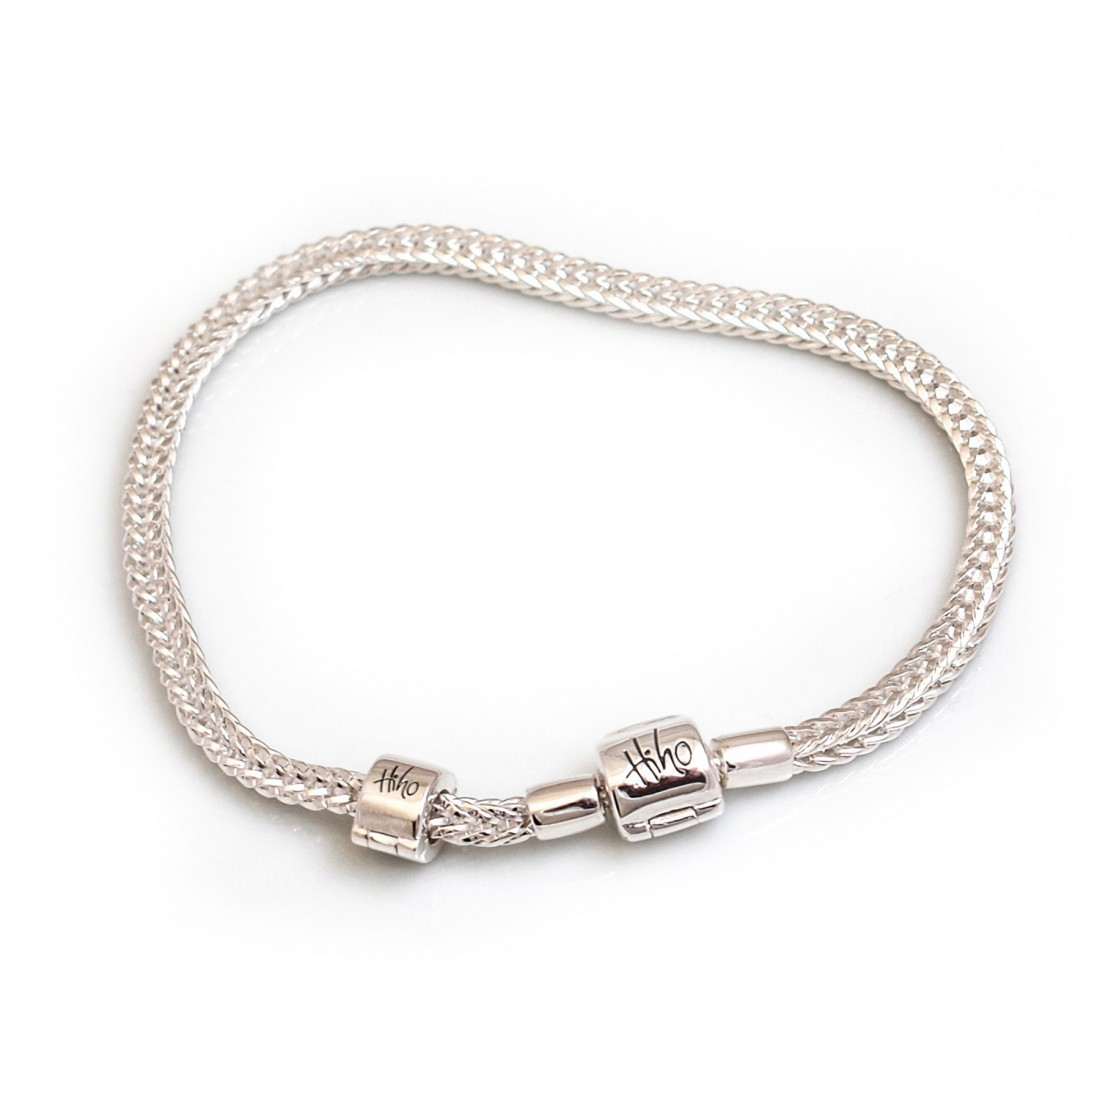 Exclusive Sterling Silver Foxtail Charm Bead Bracelet